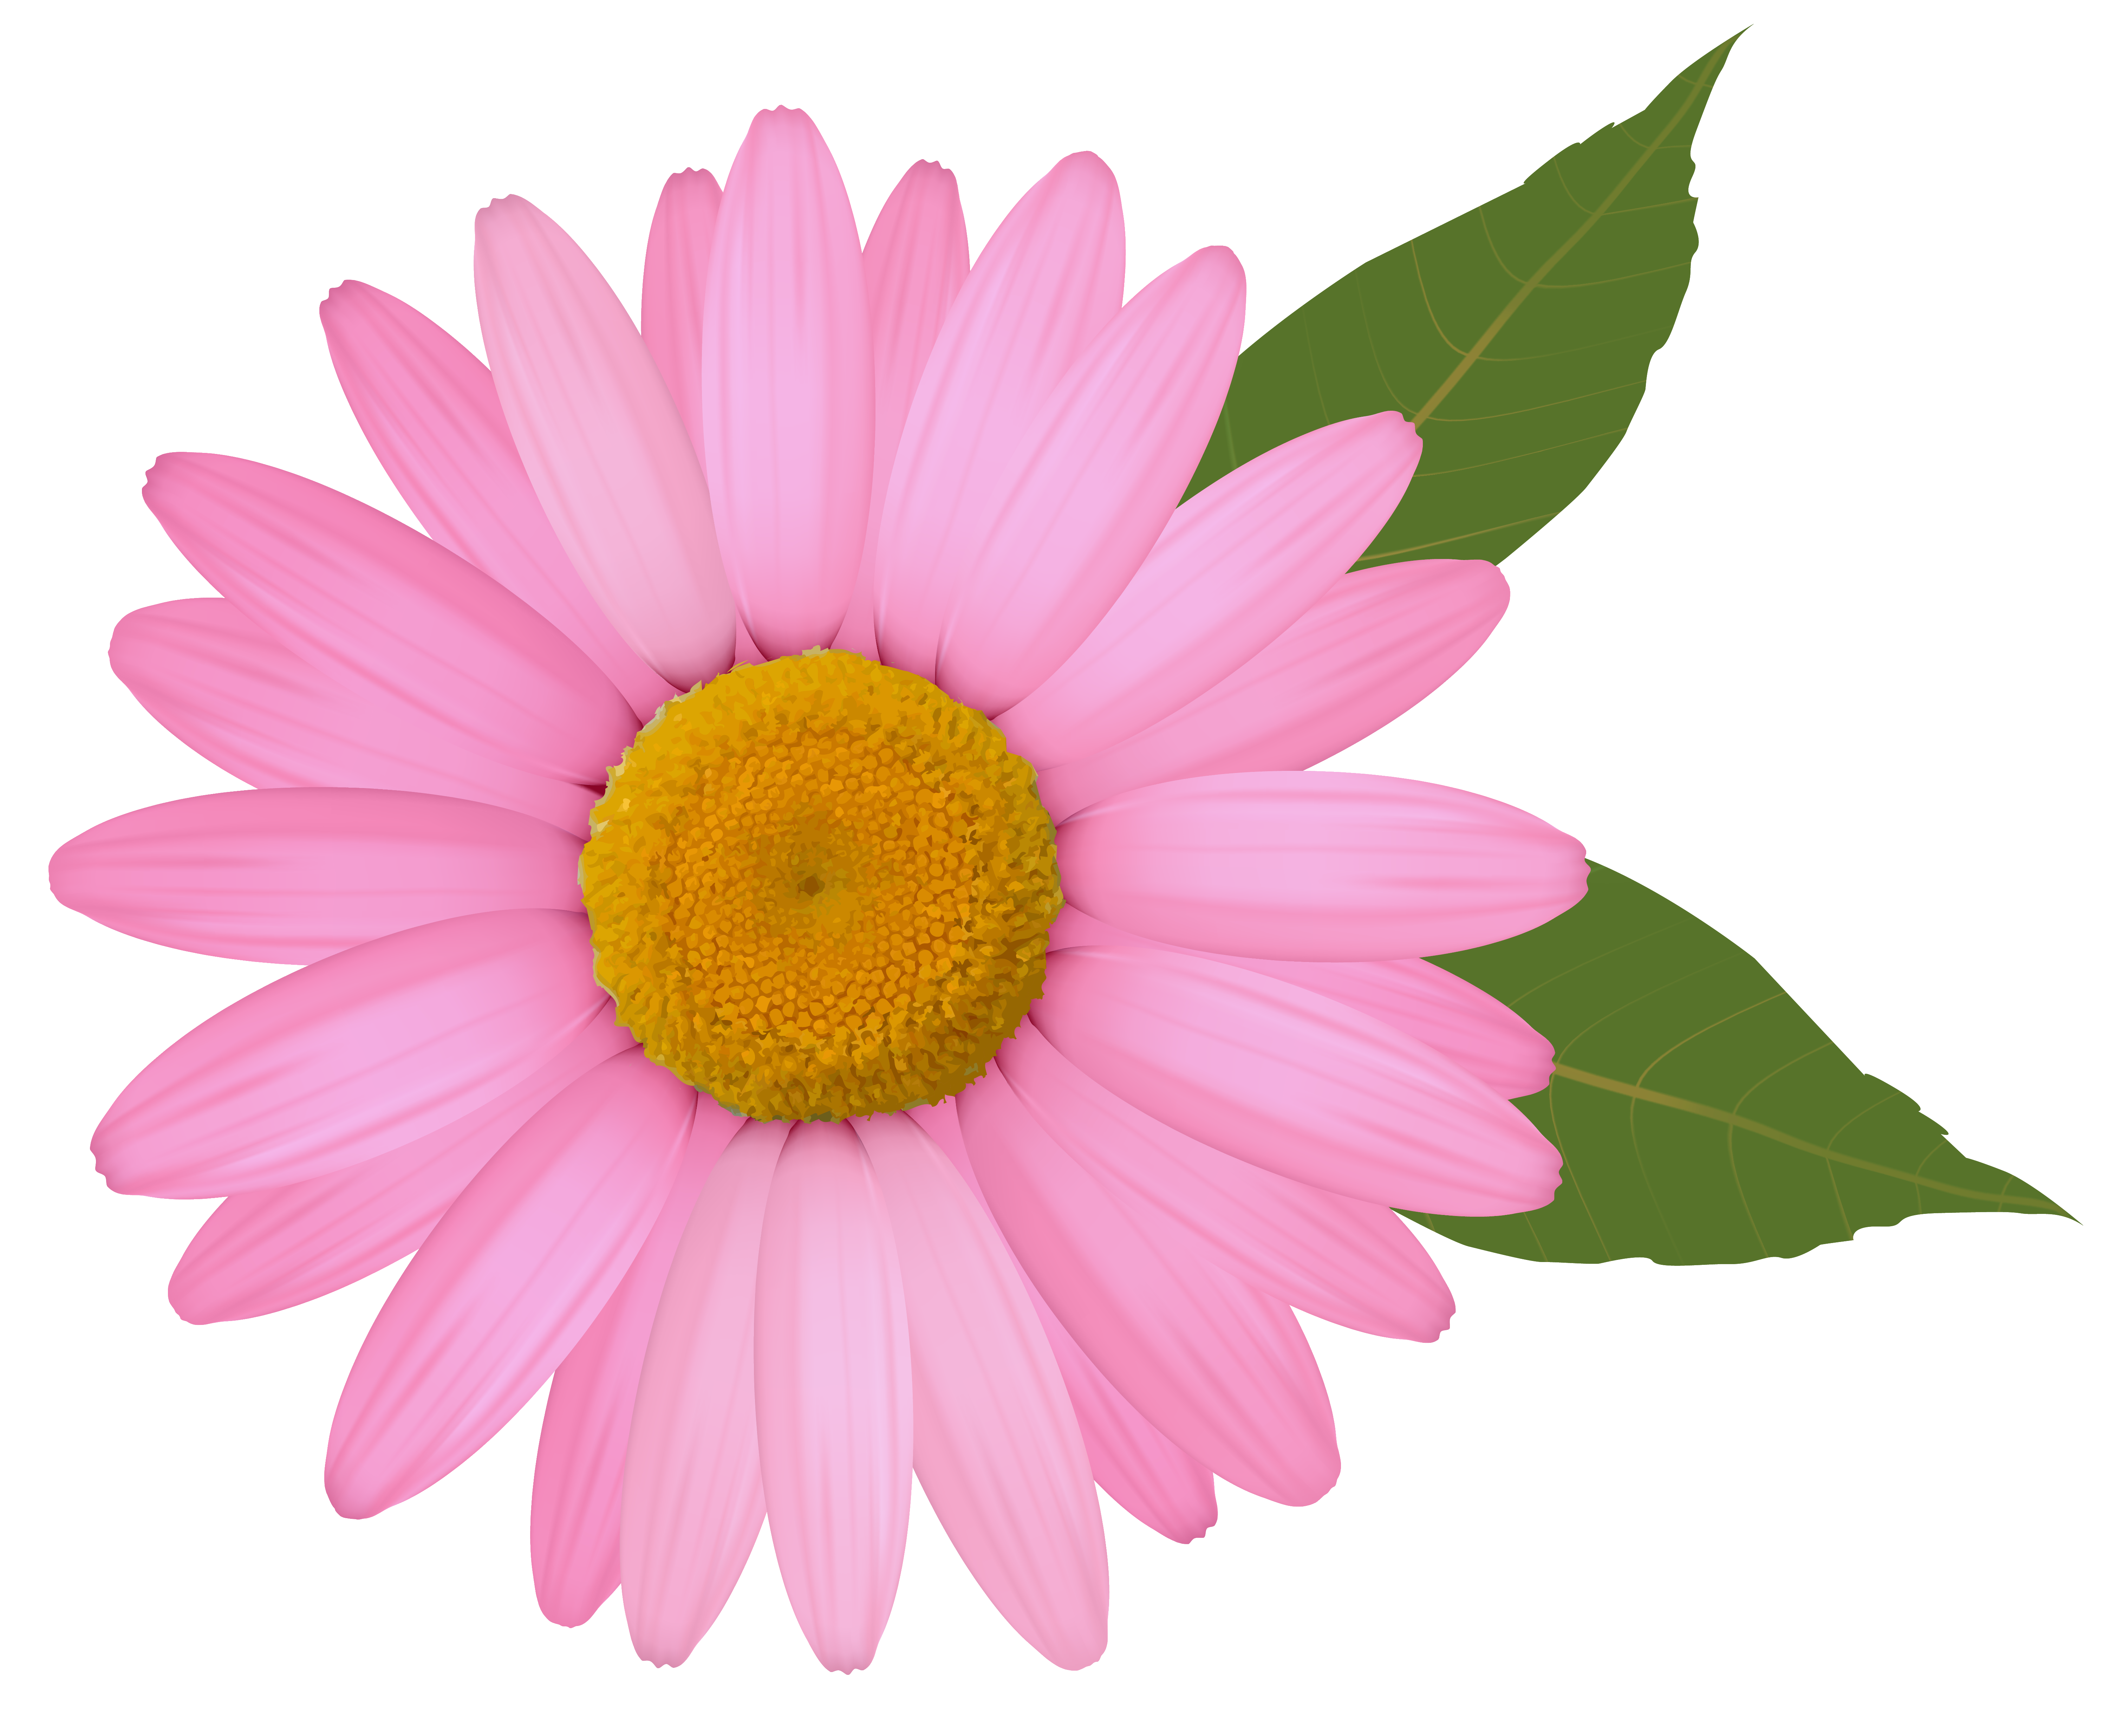 Transparent clipart daisy picture royalty free stock Free Transparent Daisy Cliparts, Download Free Clip Art ... picture royalty free stock